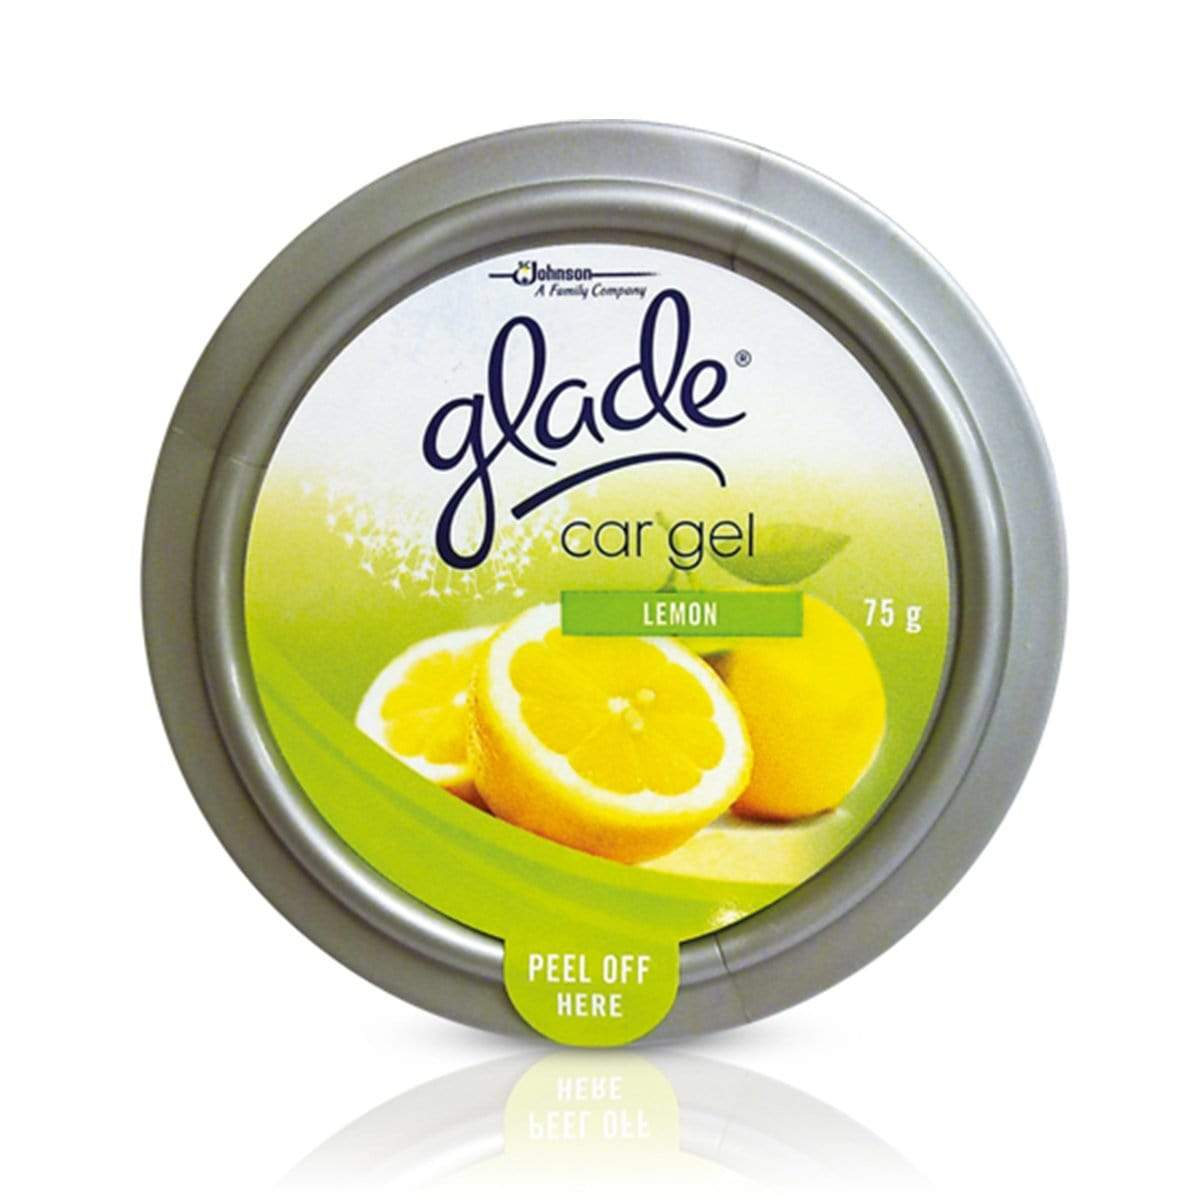 Glade Car Gel Lemon 75g 629167